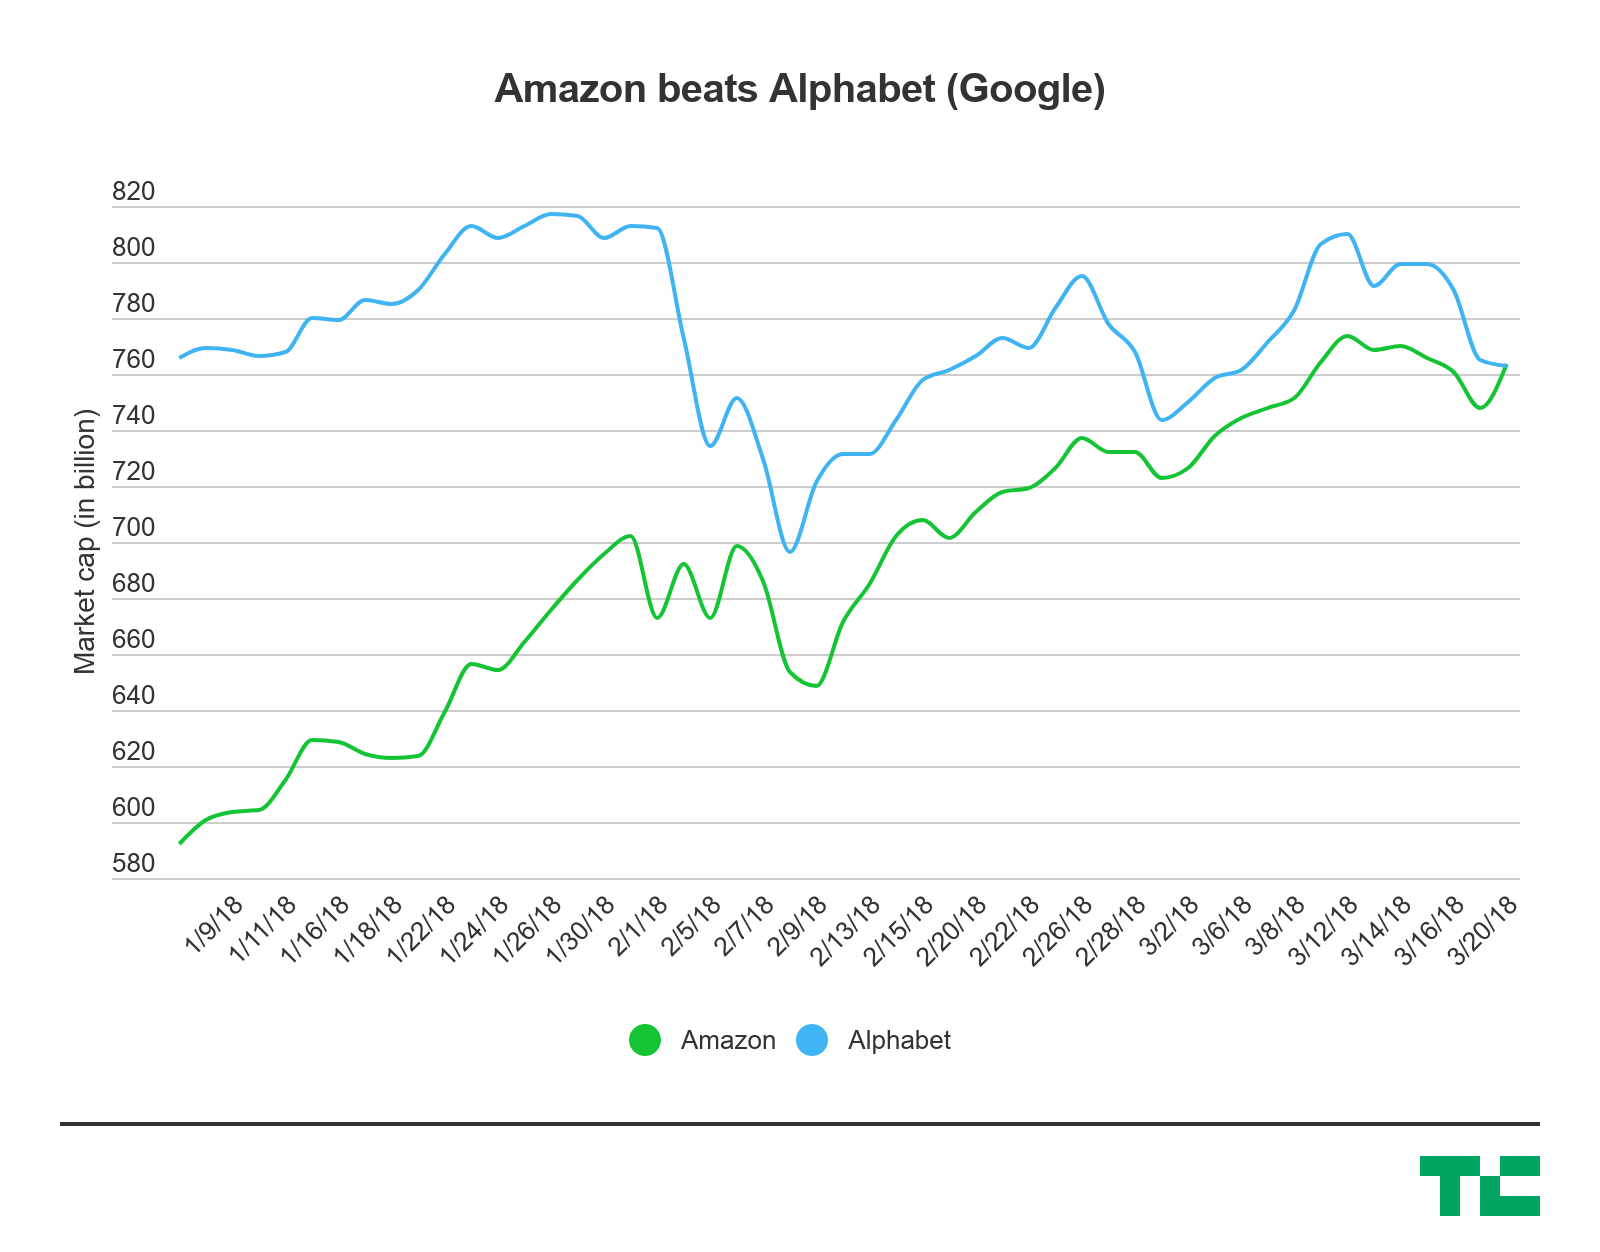 Amazon surpasses Alphabet in market value